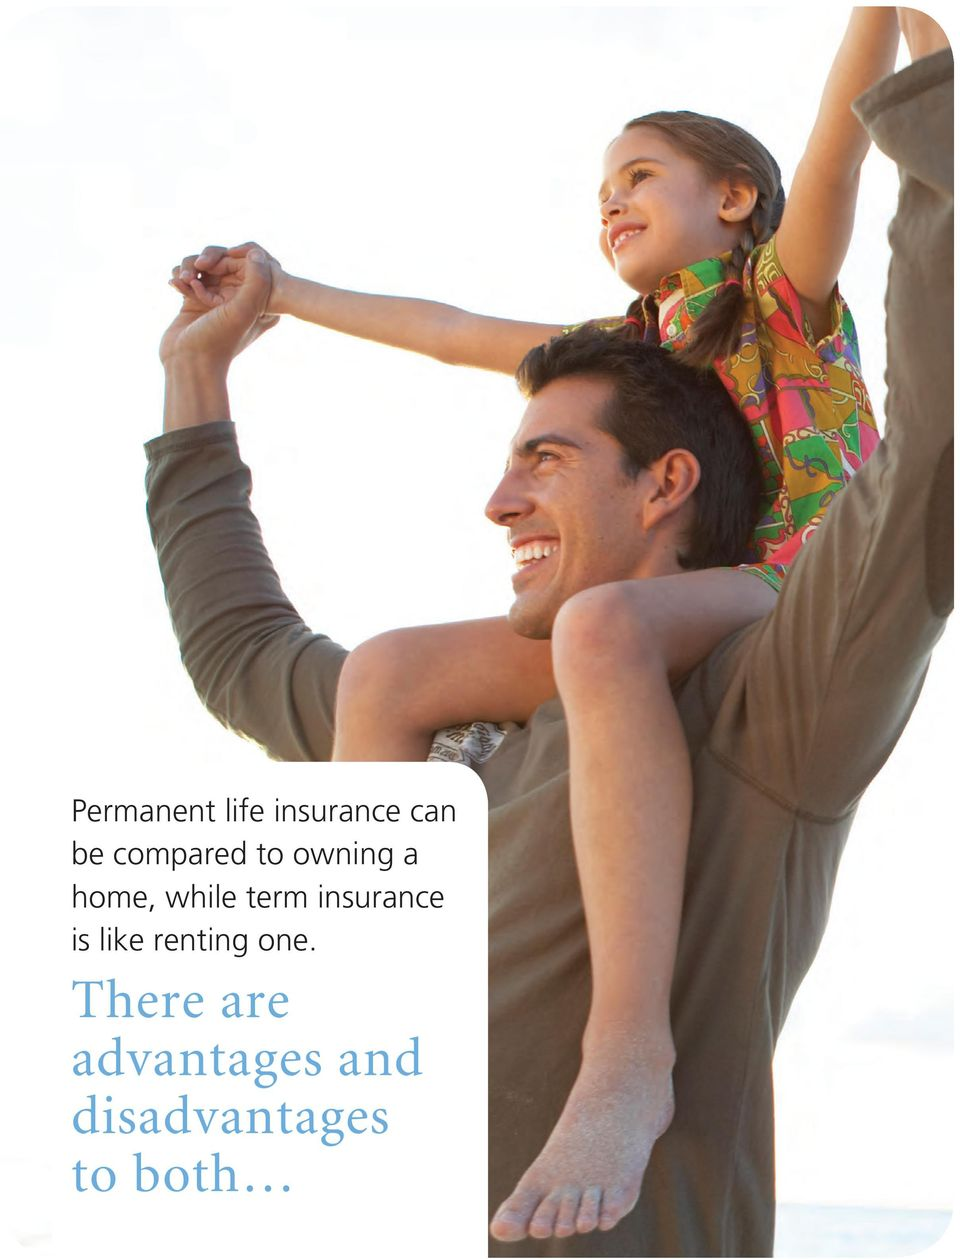 insurance is like renting one.